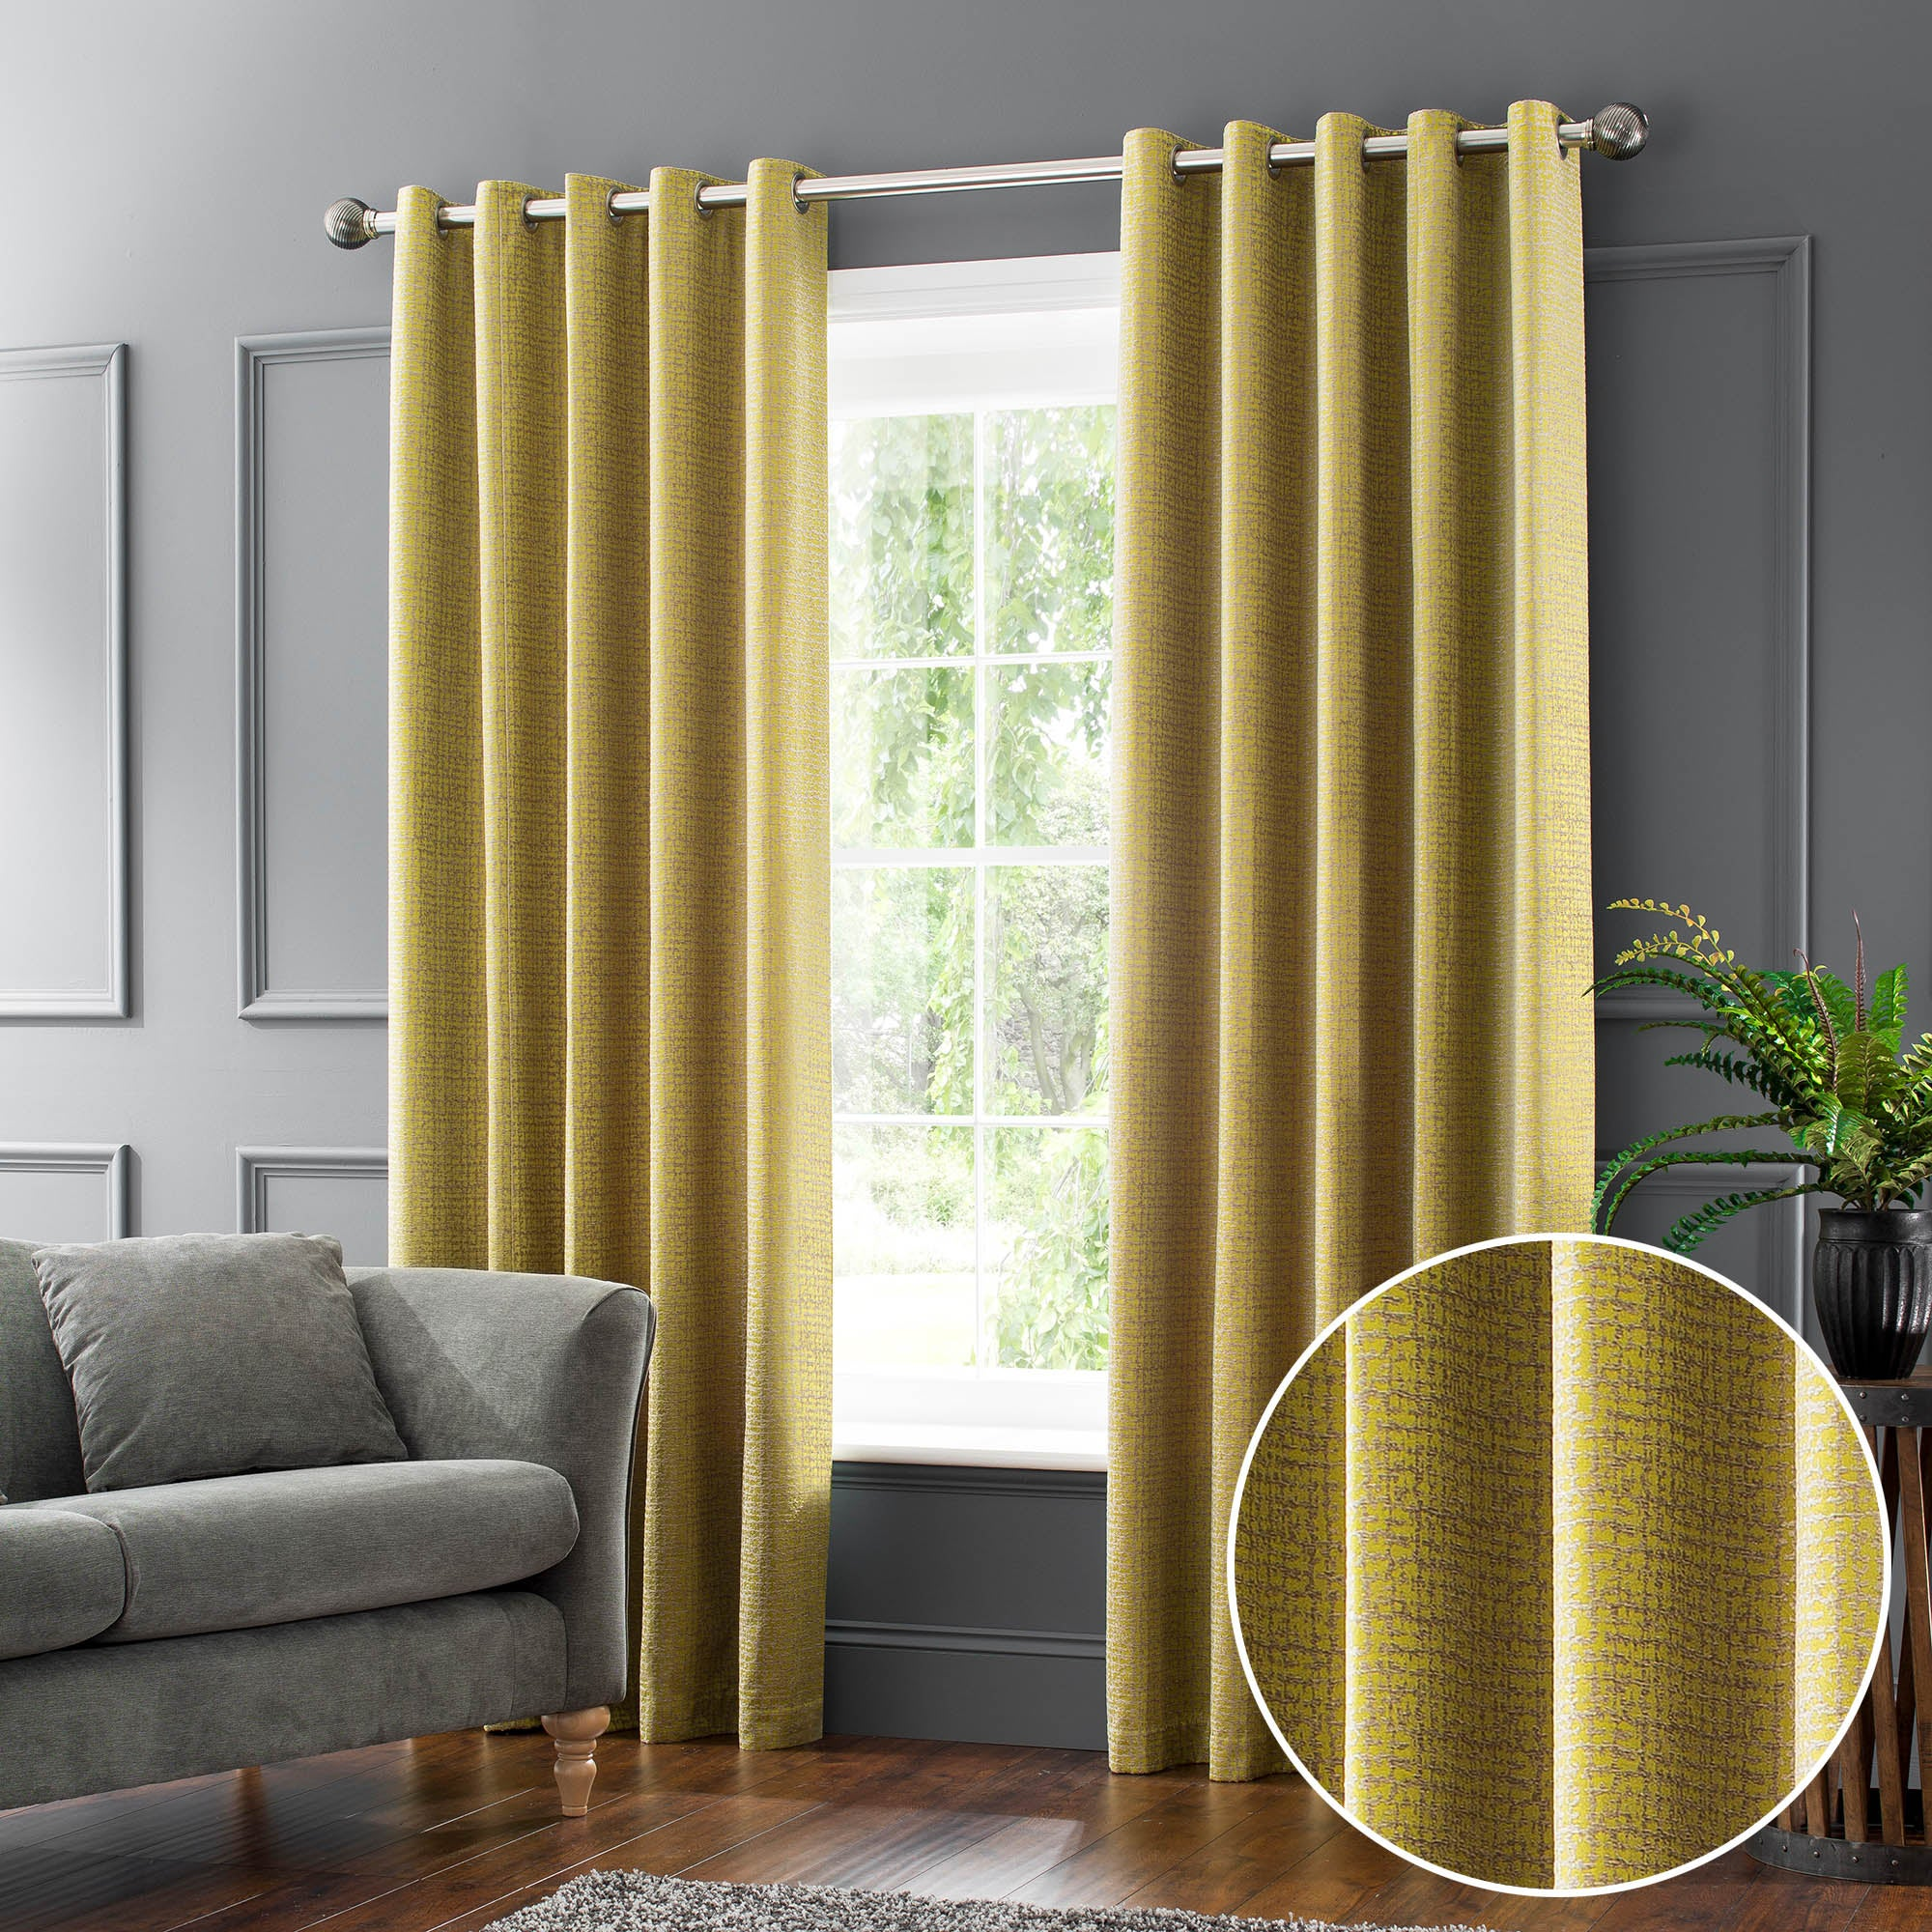 Newby Chartreuse Jacquard Eyelet Curtains Yellow